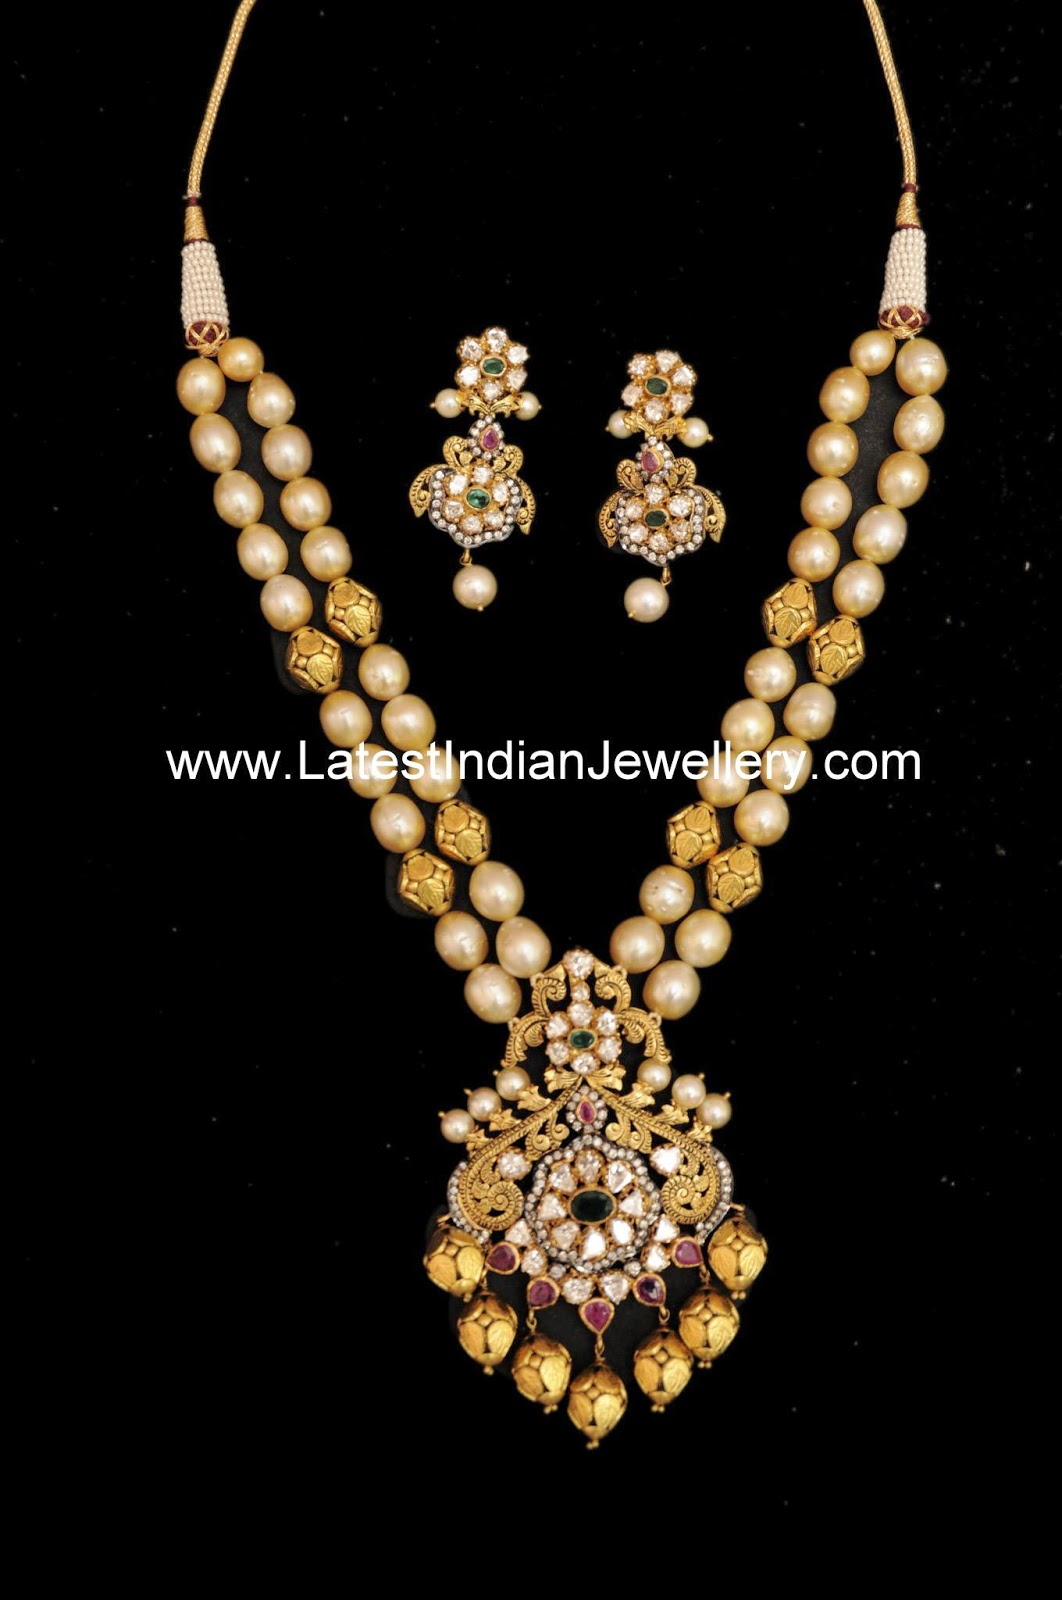 Two Stringed Pearl Gold Beads Mala Latest Indian